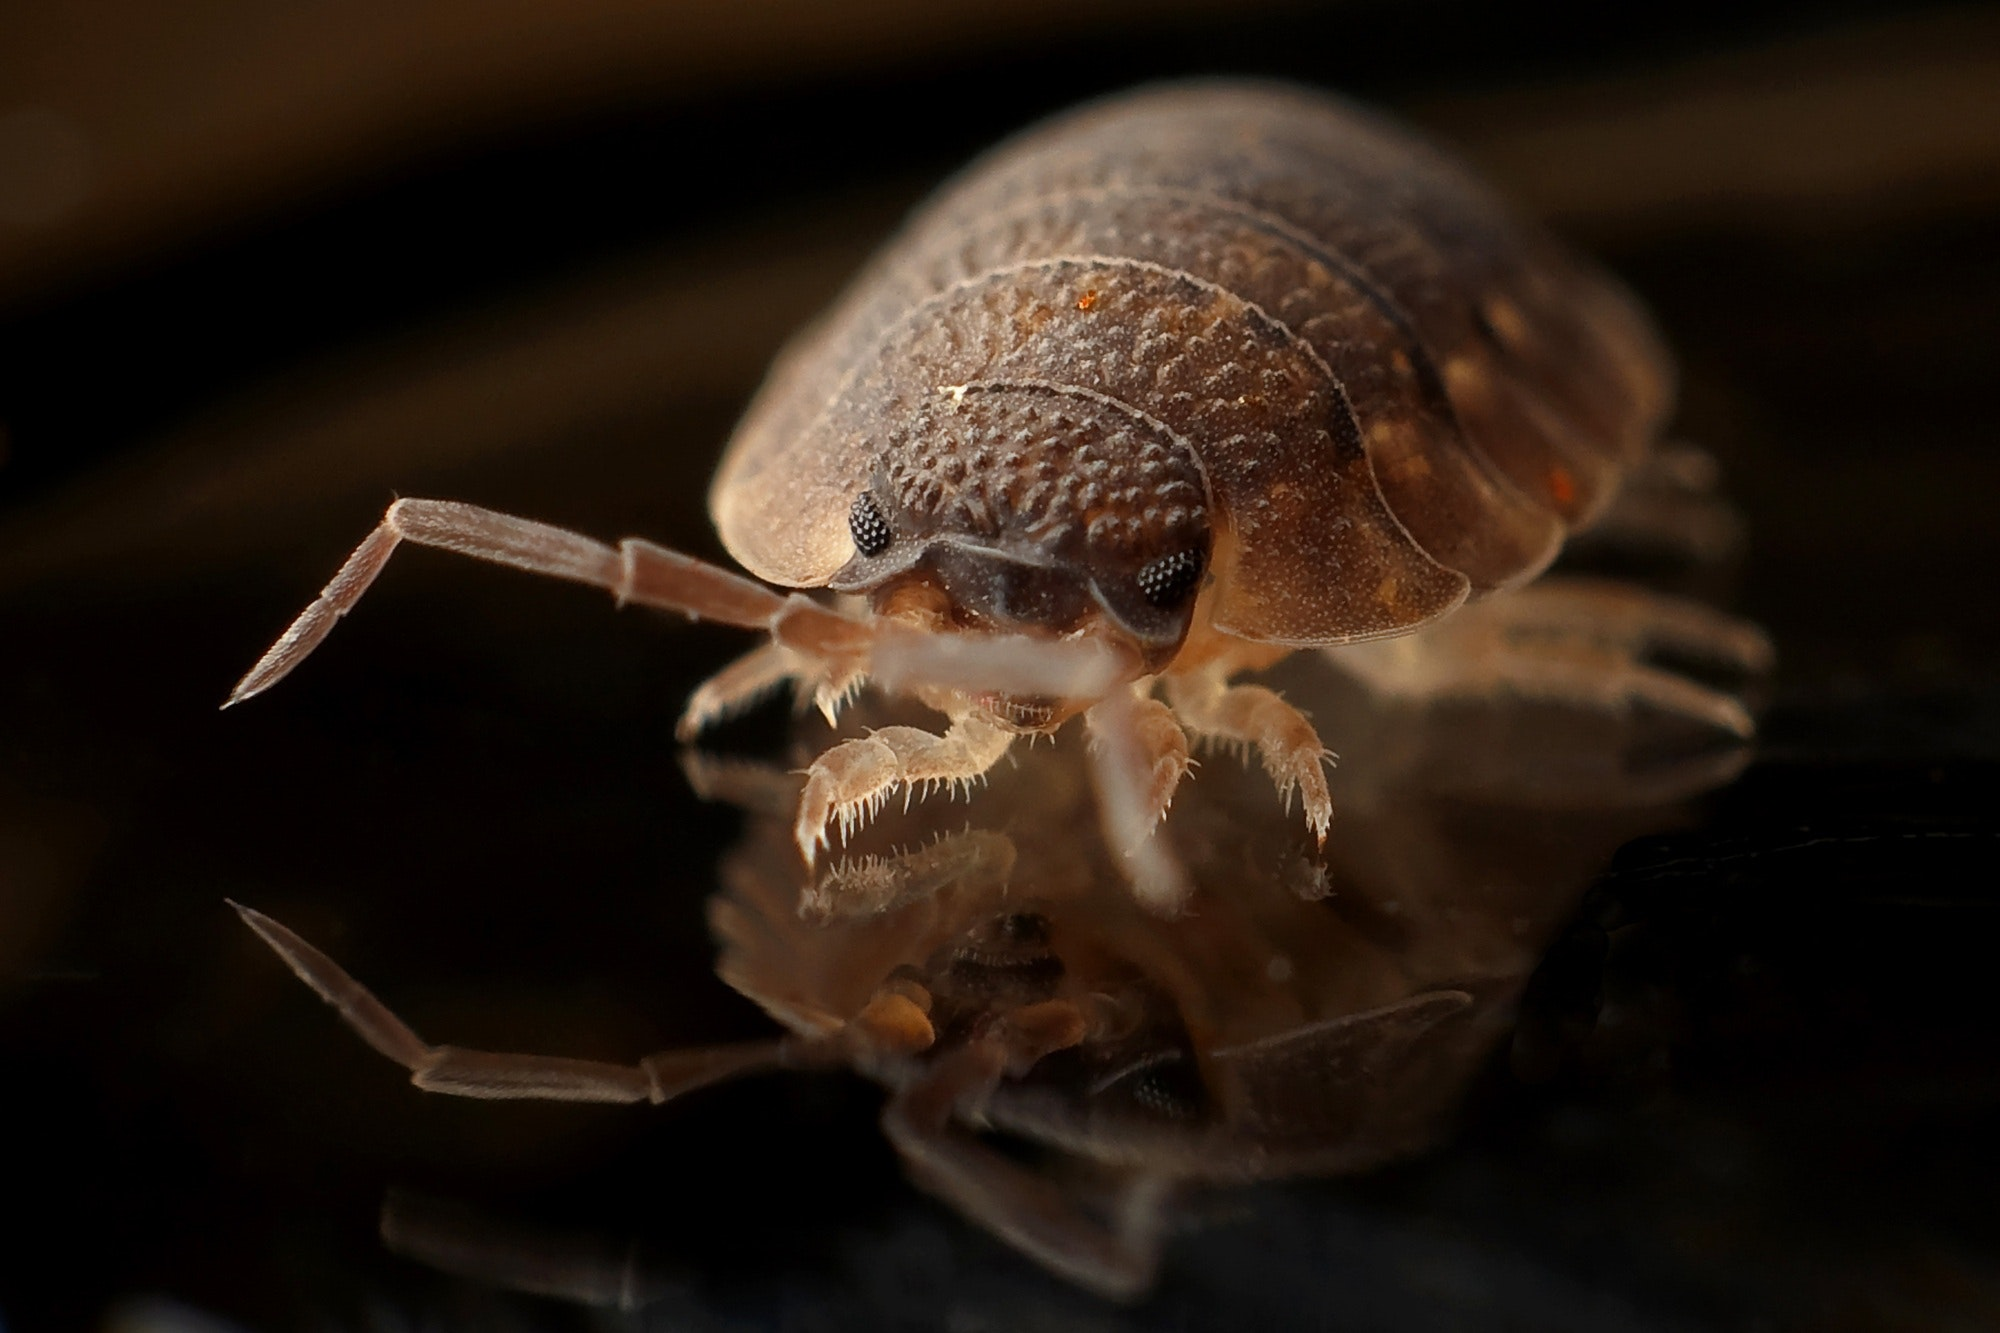 Bed Bugs? - We specialize in Bed Bug Extermination, backed by our 100% Guarantee.